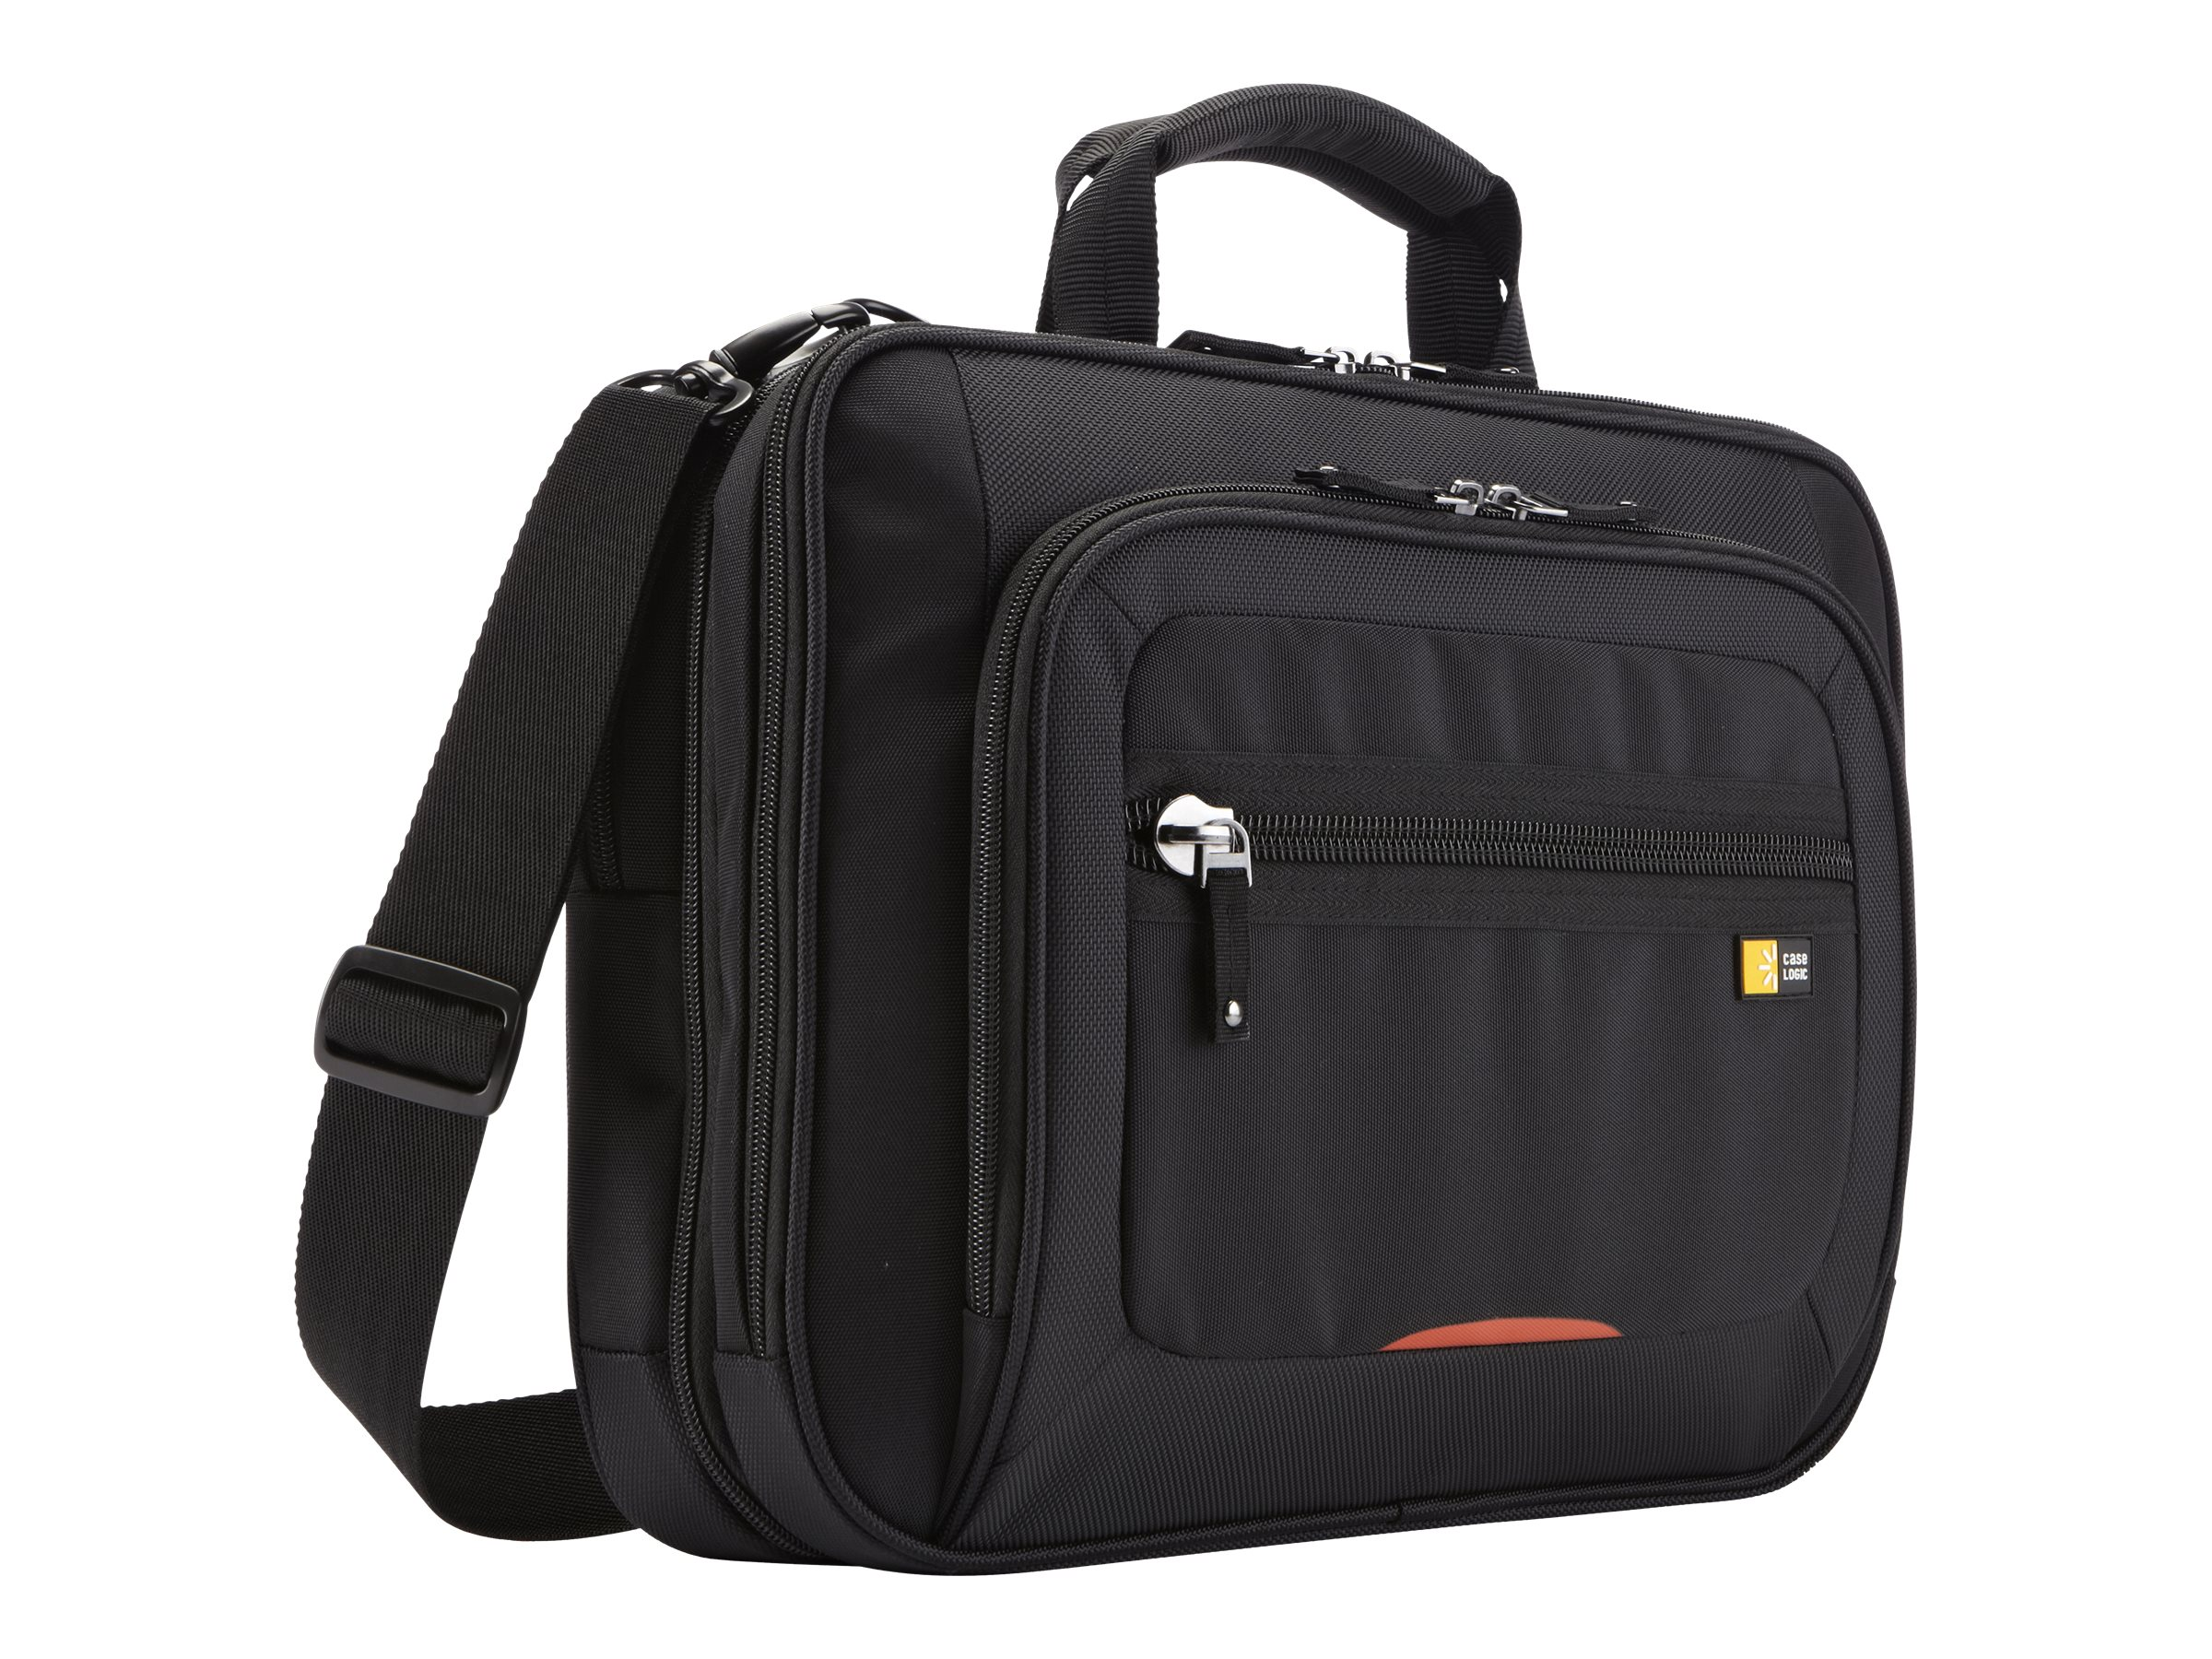 Case Logic 14 Checkpoint Friendly Laptop Case, Black, ZLCS-214BLACK, 14530168, Carrying Cases - Notebook